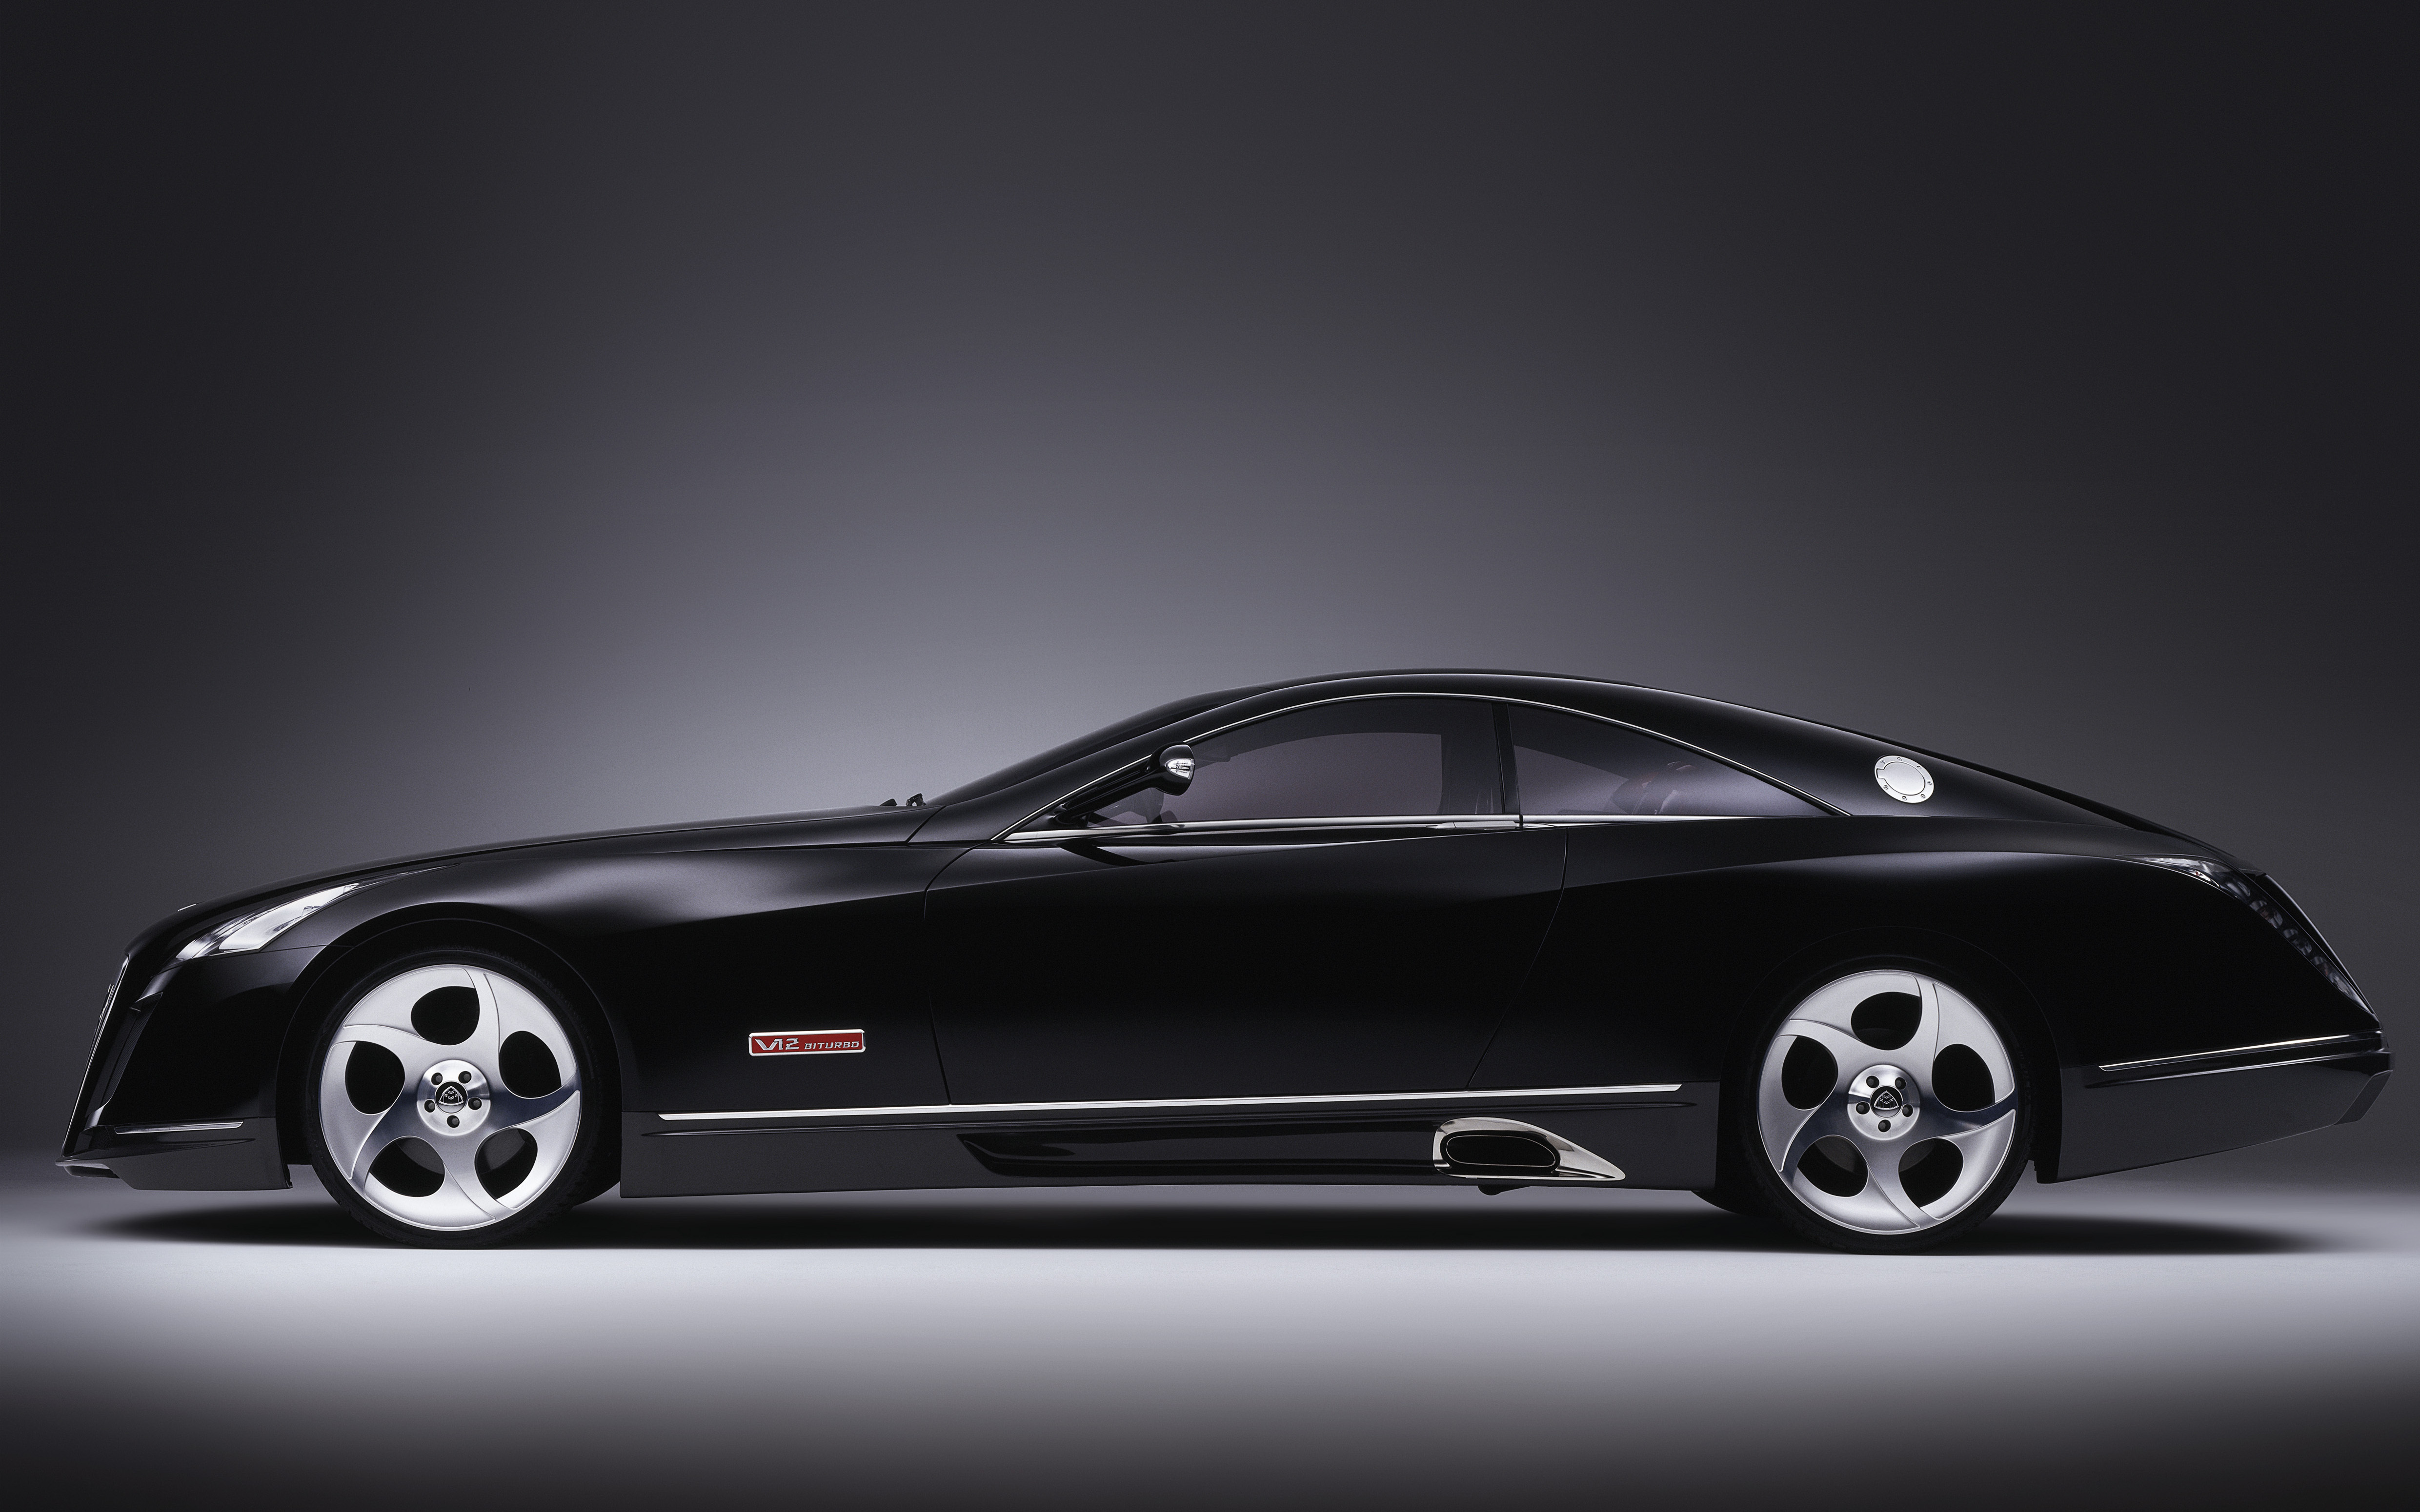 Maybach Exelero 4k Ultra HD Wallpaper Background Image 4960x3100